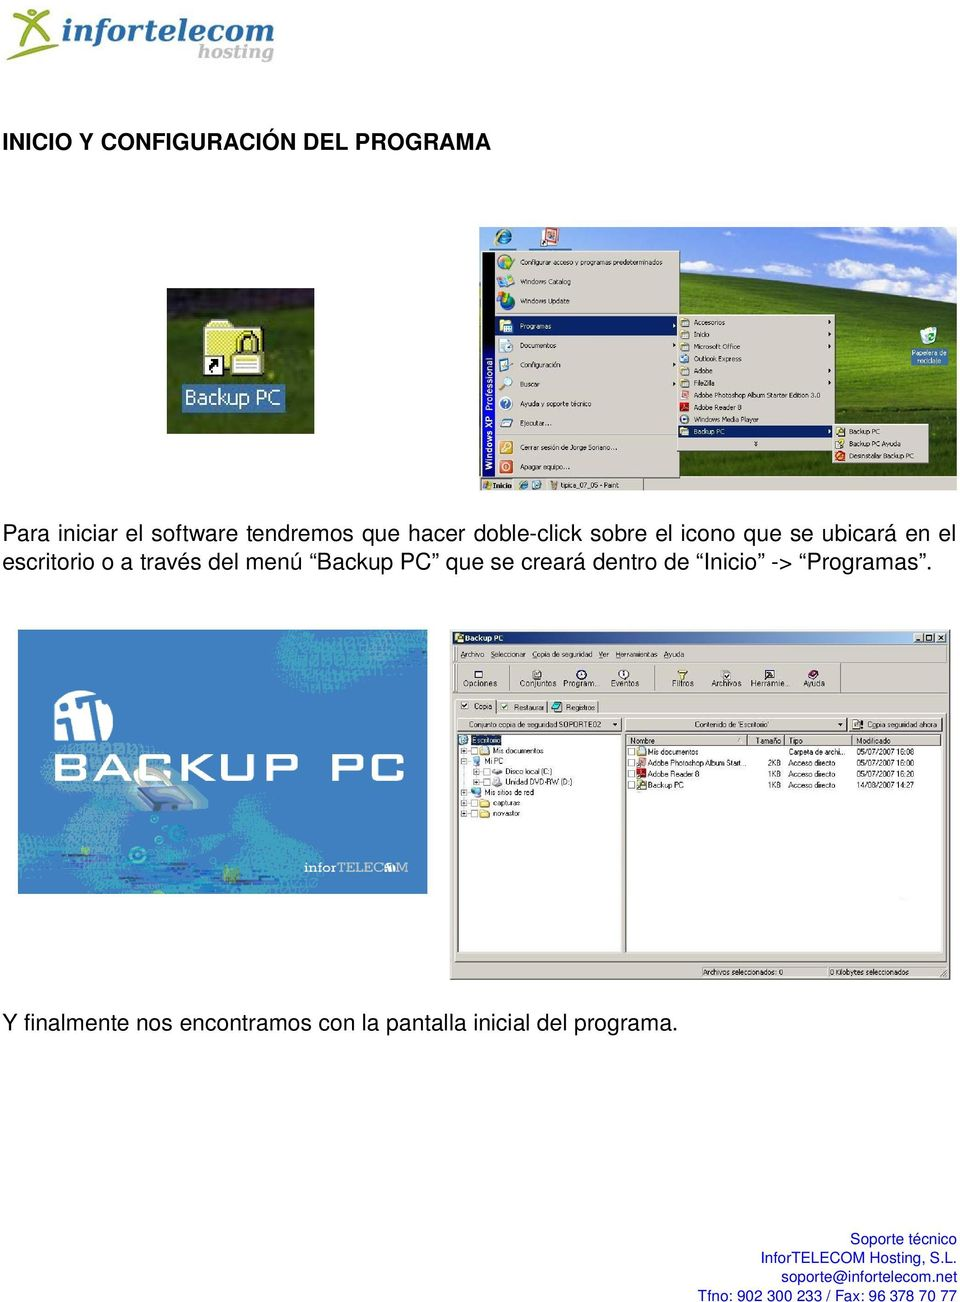 escritorio o a través del menú Backup PC que se creará dentro de